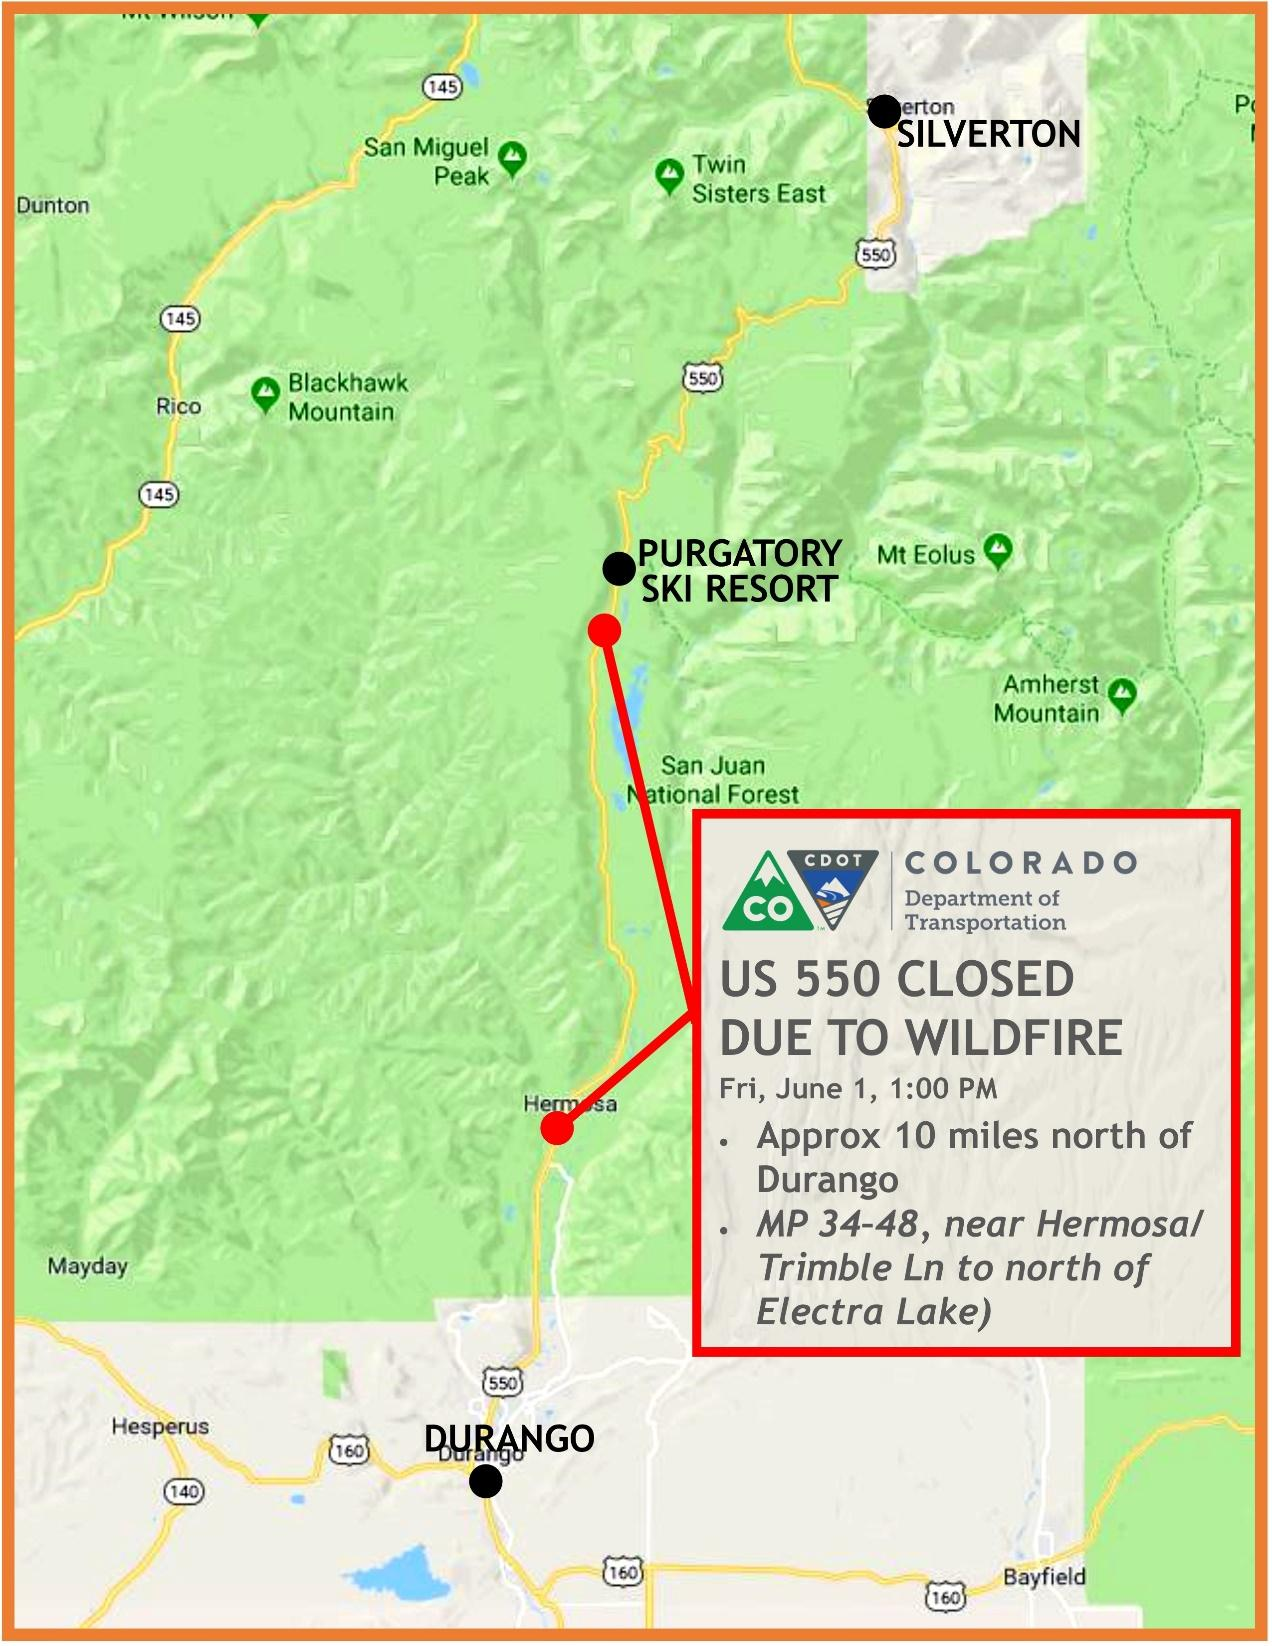 US 550 Closed due to Wildfire